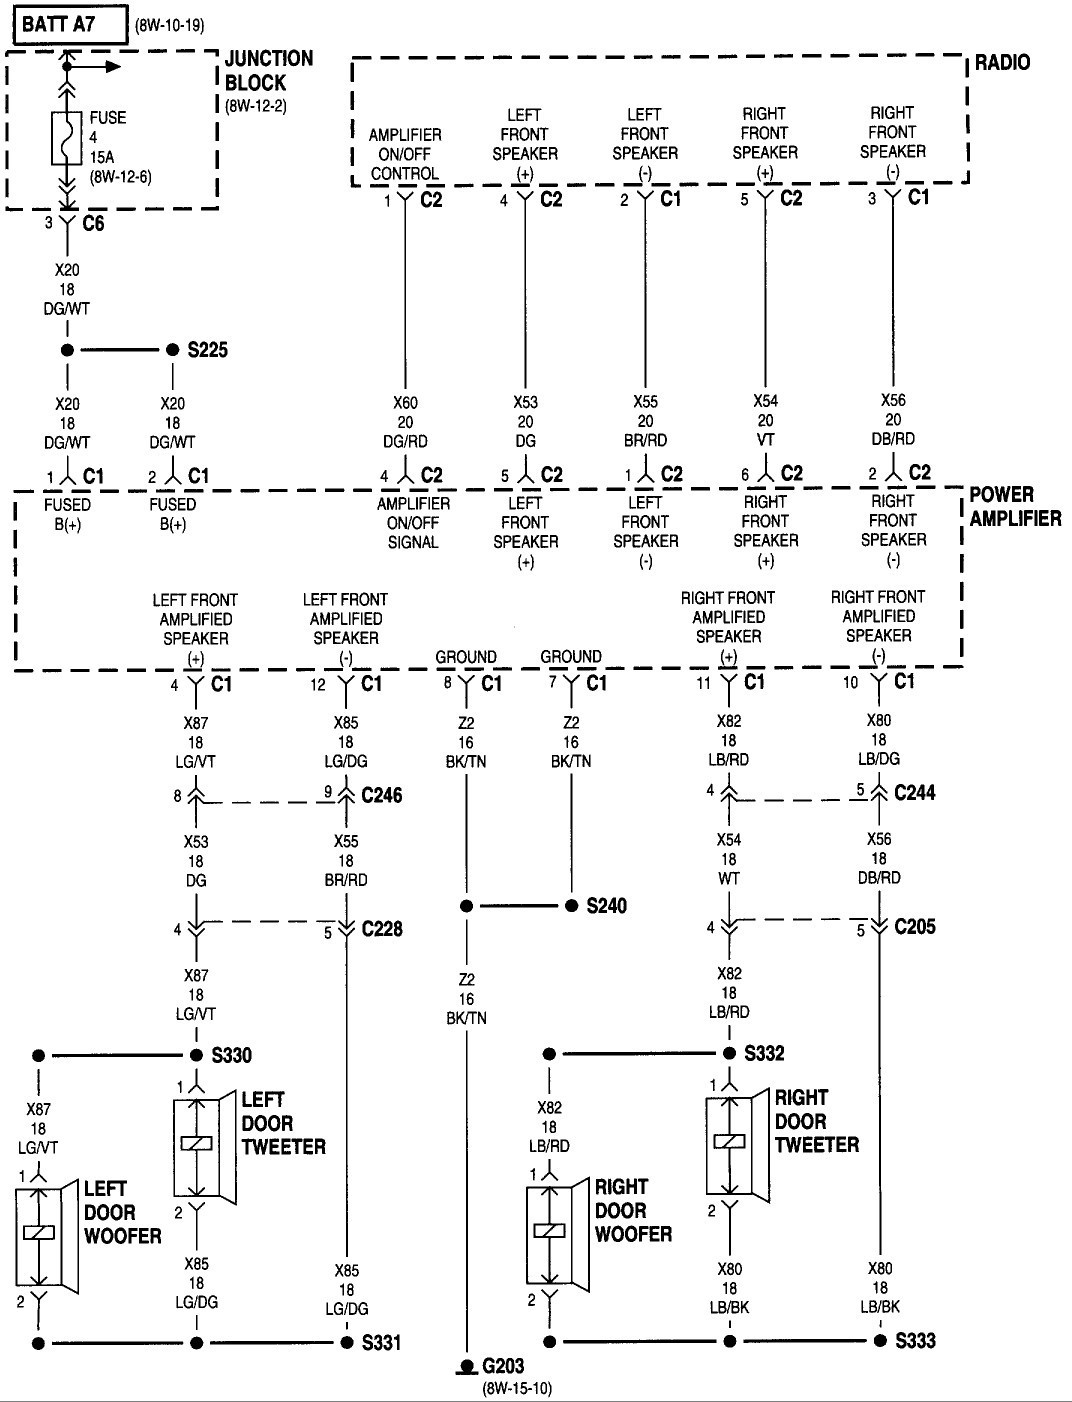 2005 Dodge Grand Caravan Sxt Wiring Diagram